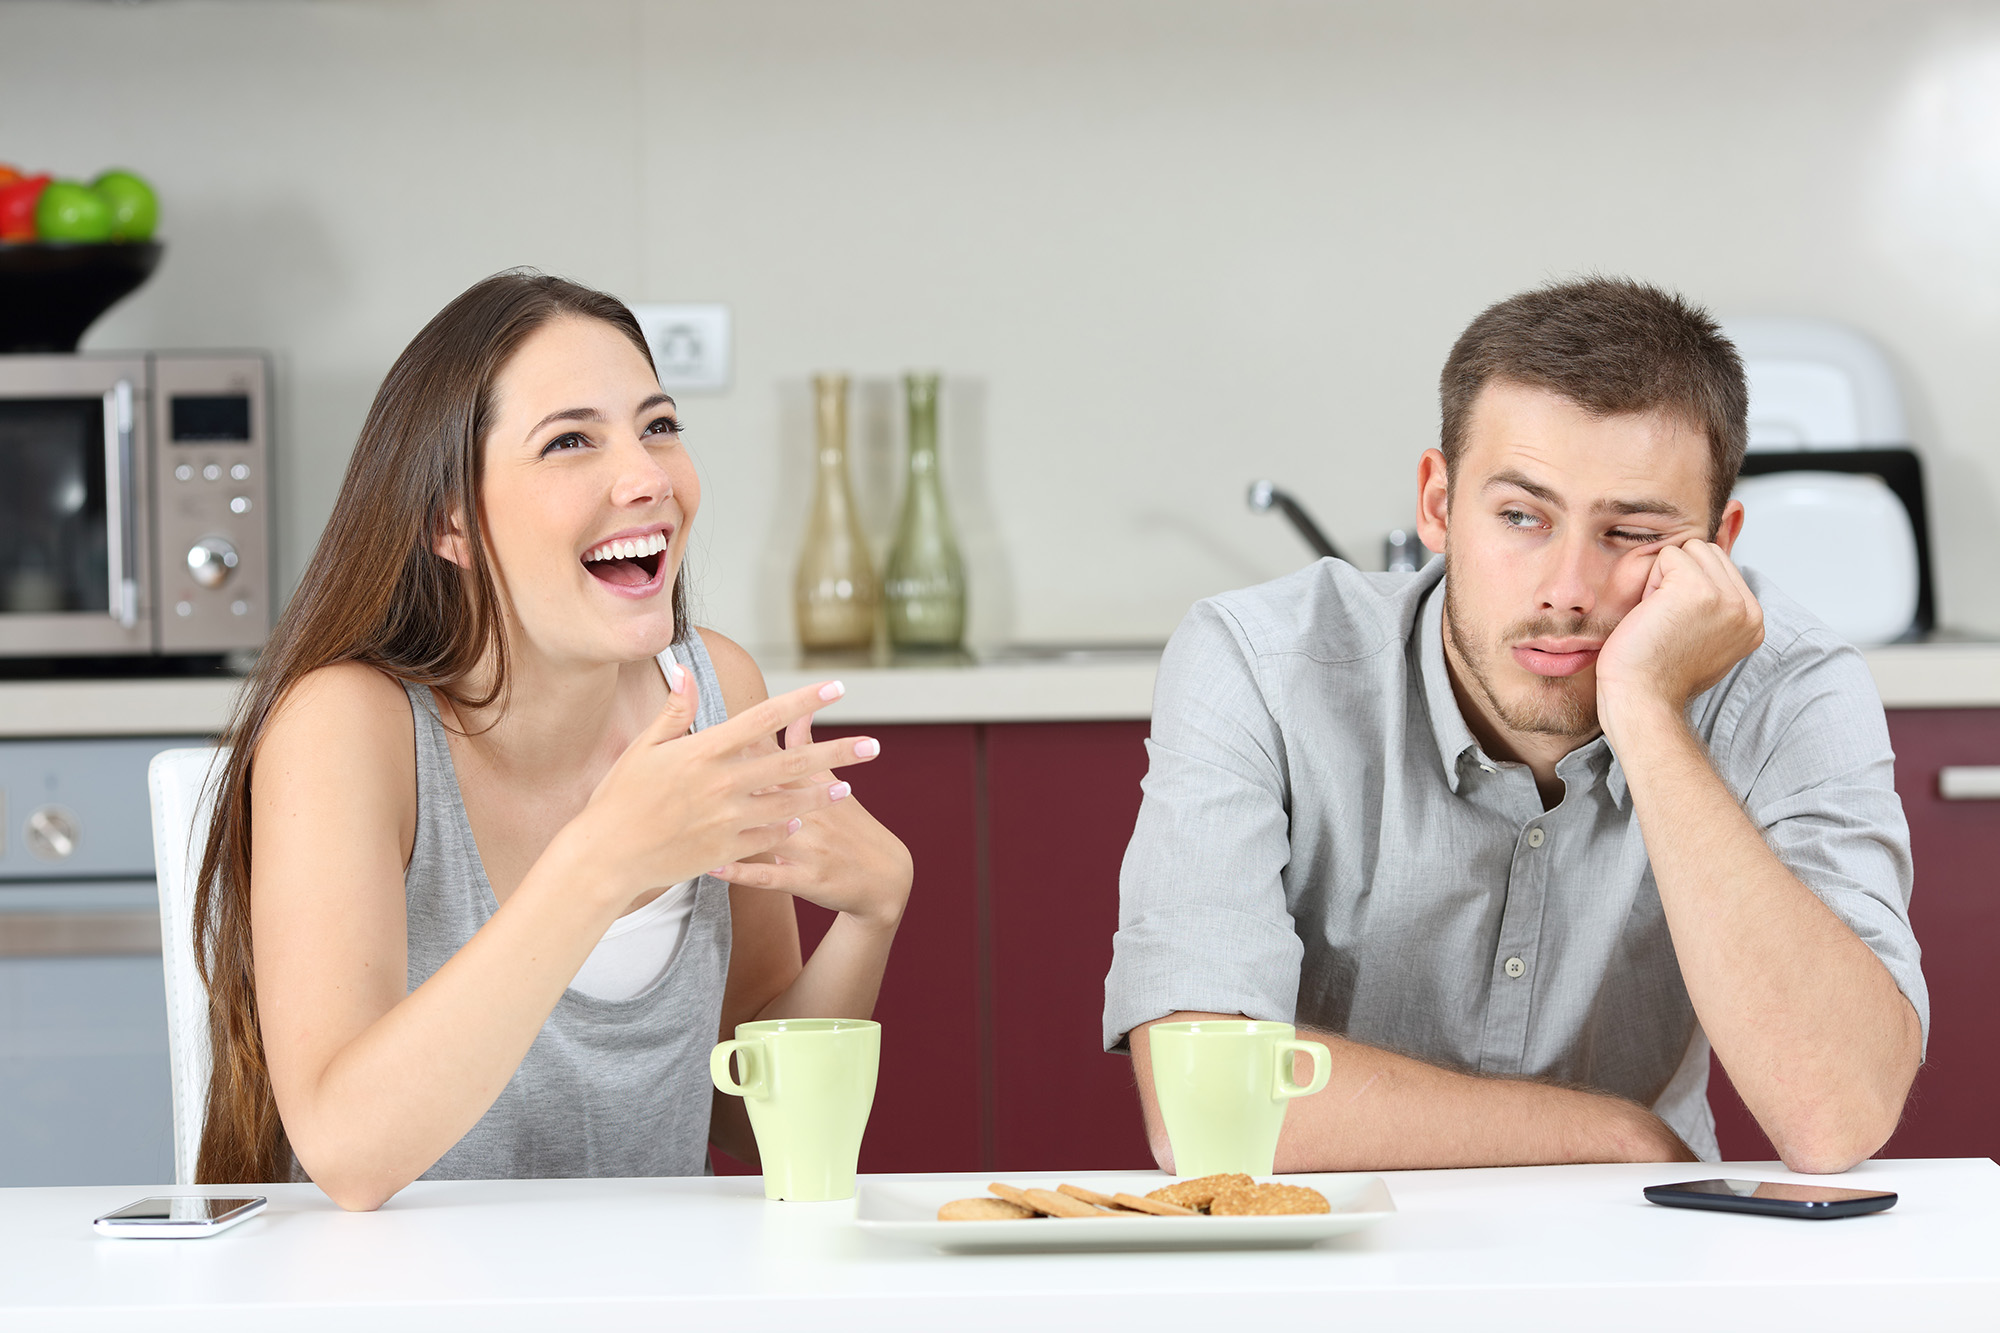 Bored Guy with Wife